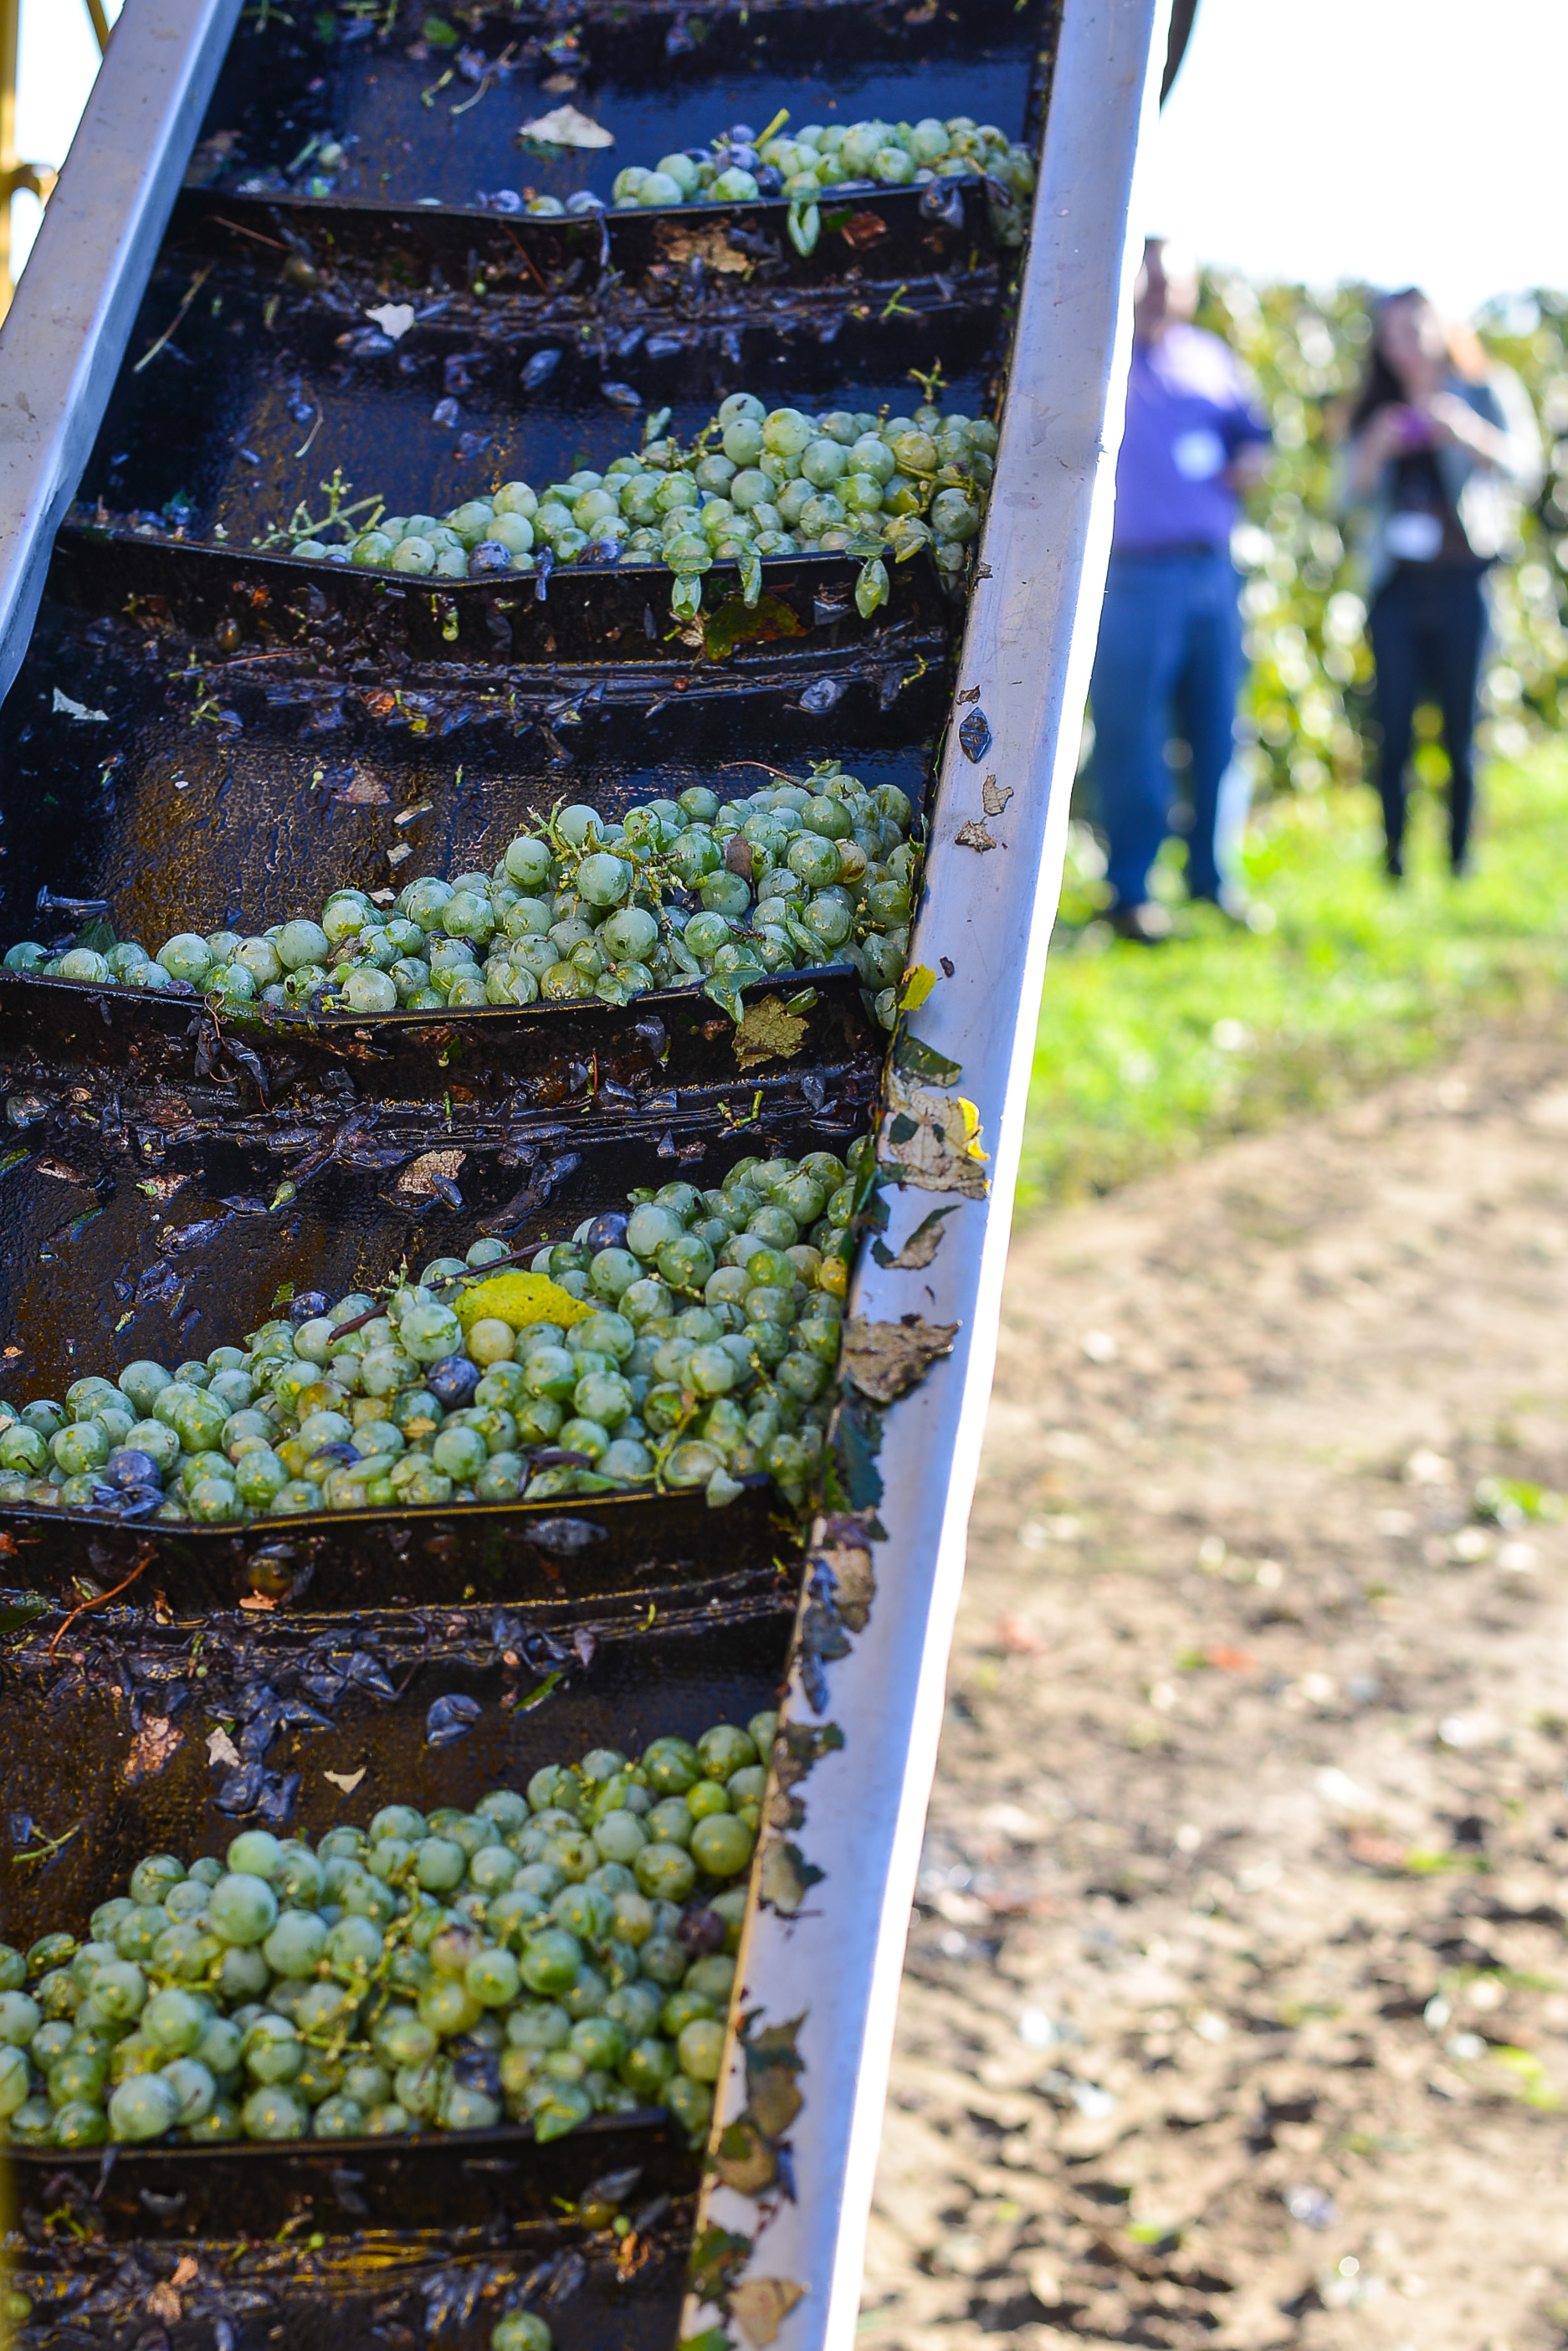 Niagra grapes going up the belt on the harvester.